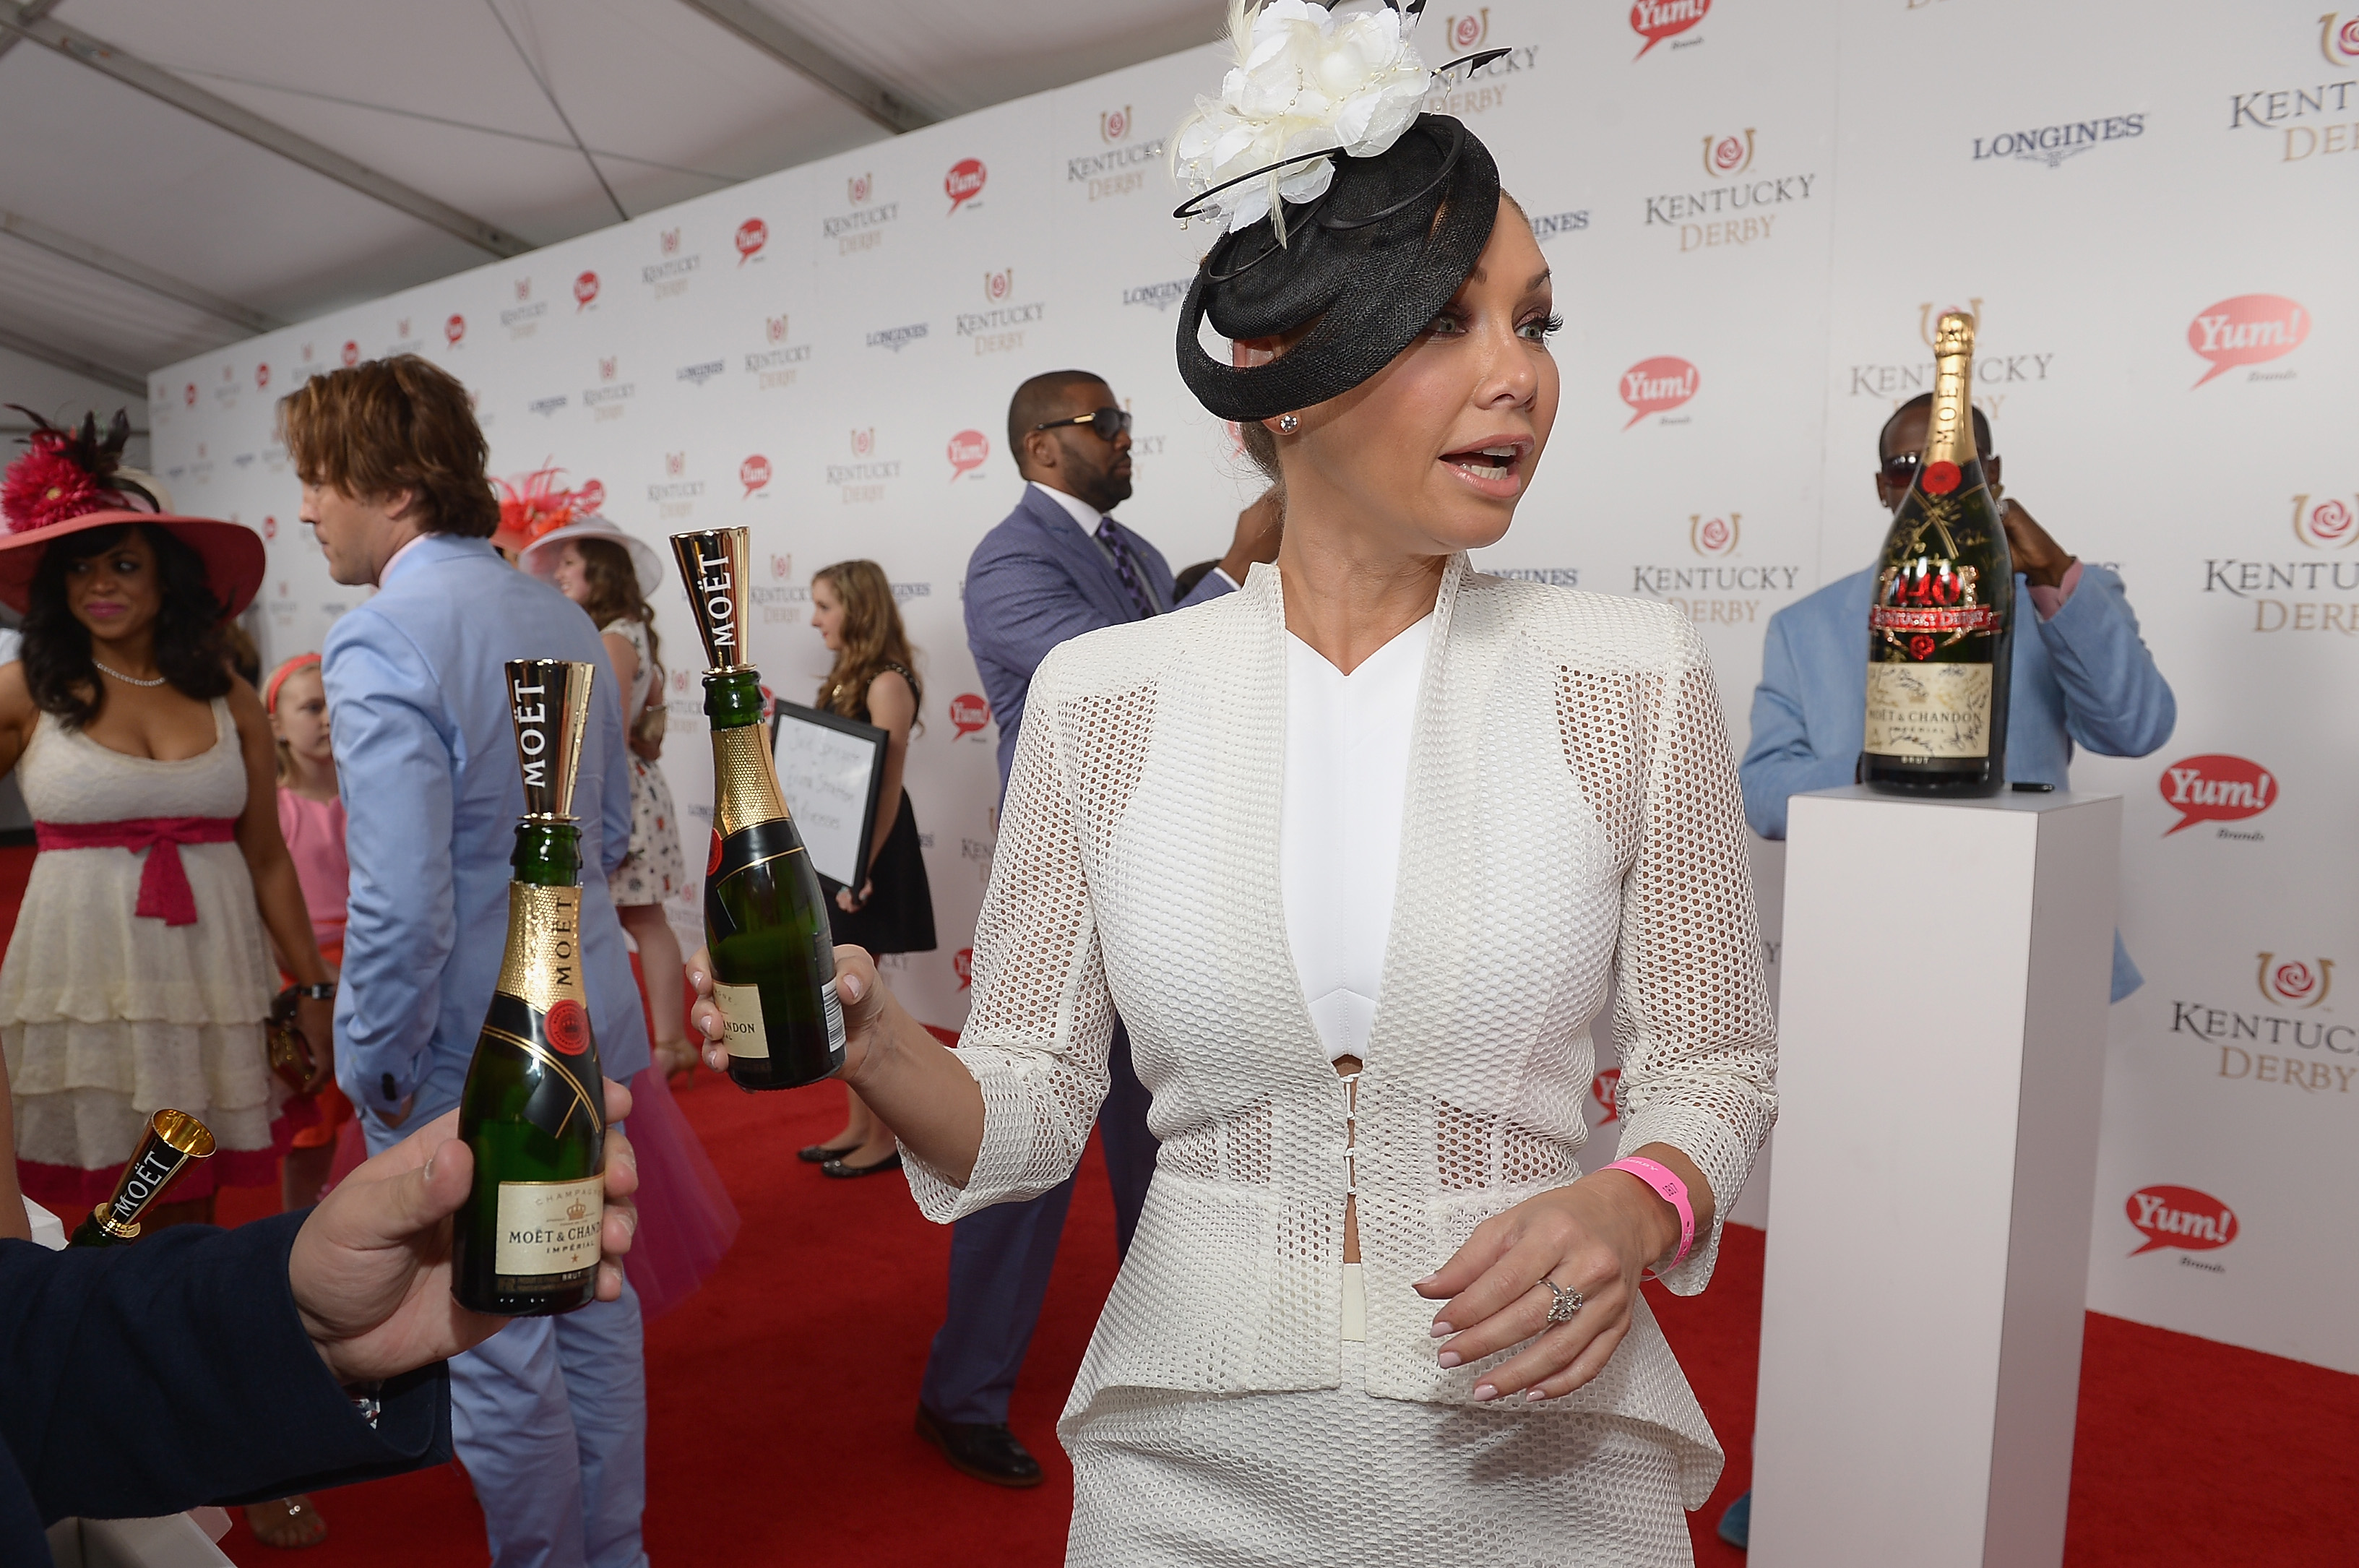 Dancing With The Stars' Kym Johnson toasts with Moet & Chandon at the 140th Kentucky Derby at Churchill Downs on May 3, 2014 in Louisville, Kentucky.  (Photo by Gustavo Caballero/Getty Images for Moet & Chandon)